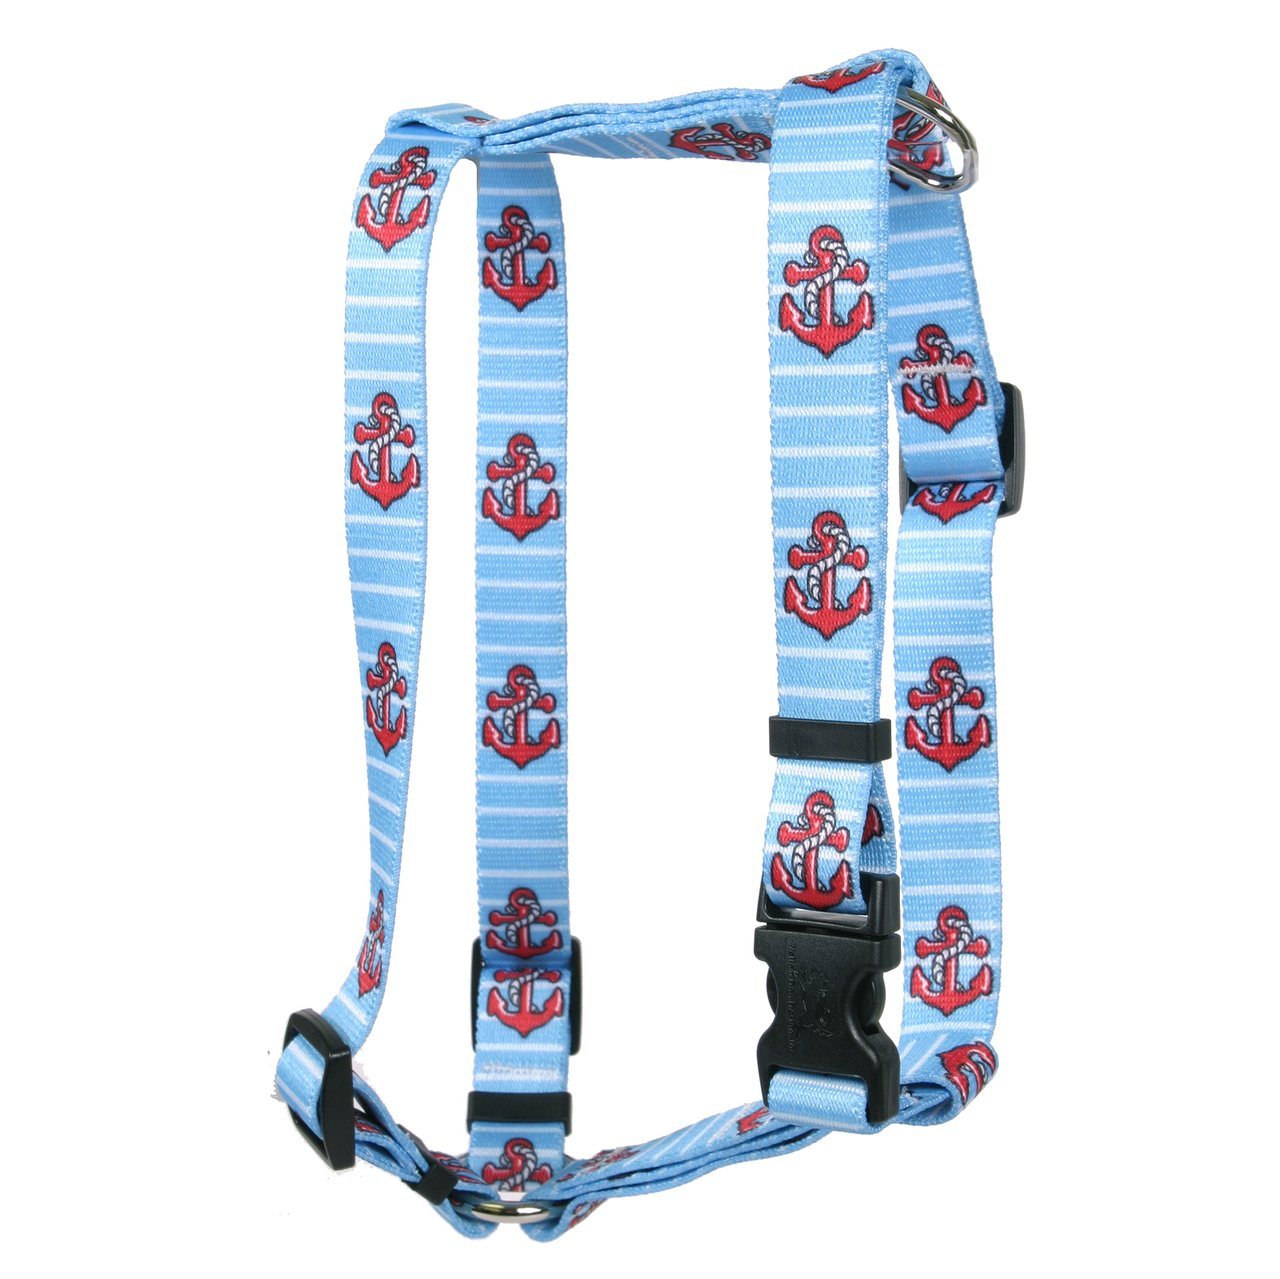 Yellow Dog Design Anchors on Blue Stripes Roman Style H Dog Harness, X-Large/1'' Wide by Yellow Dog Design (Image #1)